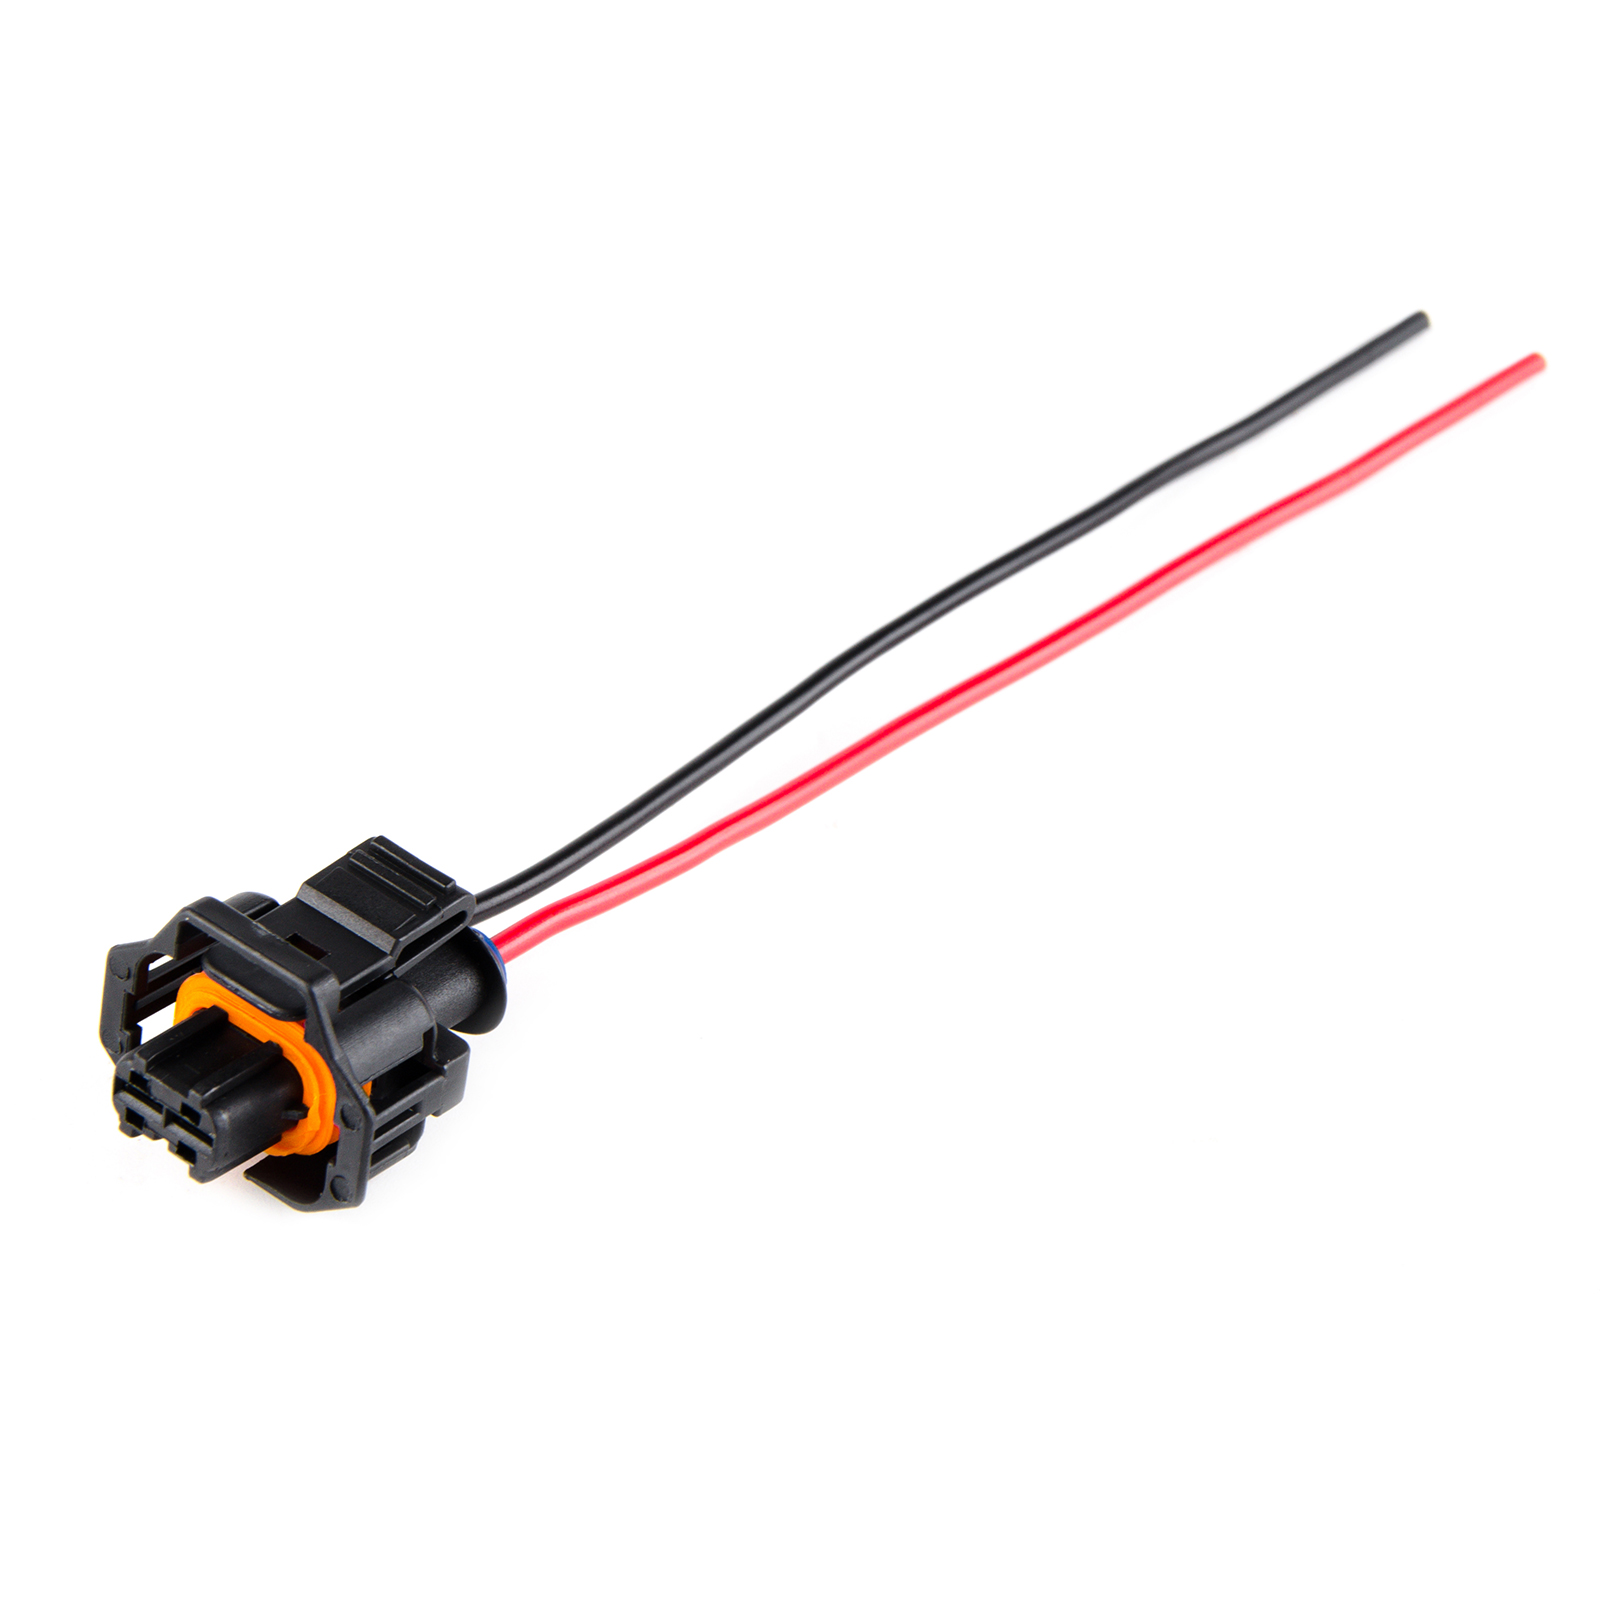 small resolution of duramax lly lbz llm fuel injector connector harness for bosch vauxhall zafira vectra signum astra 2004